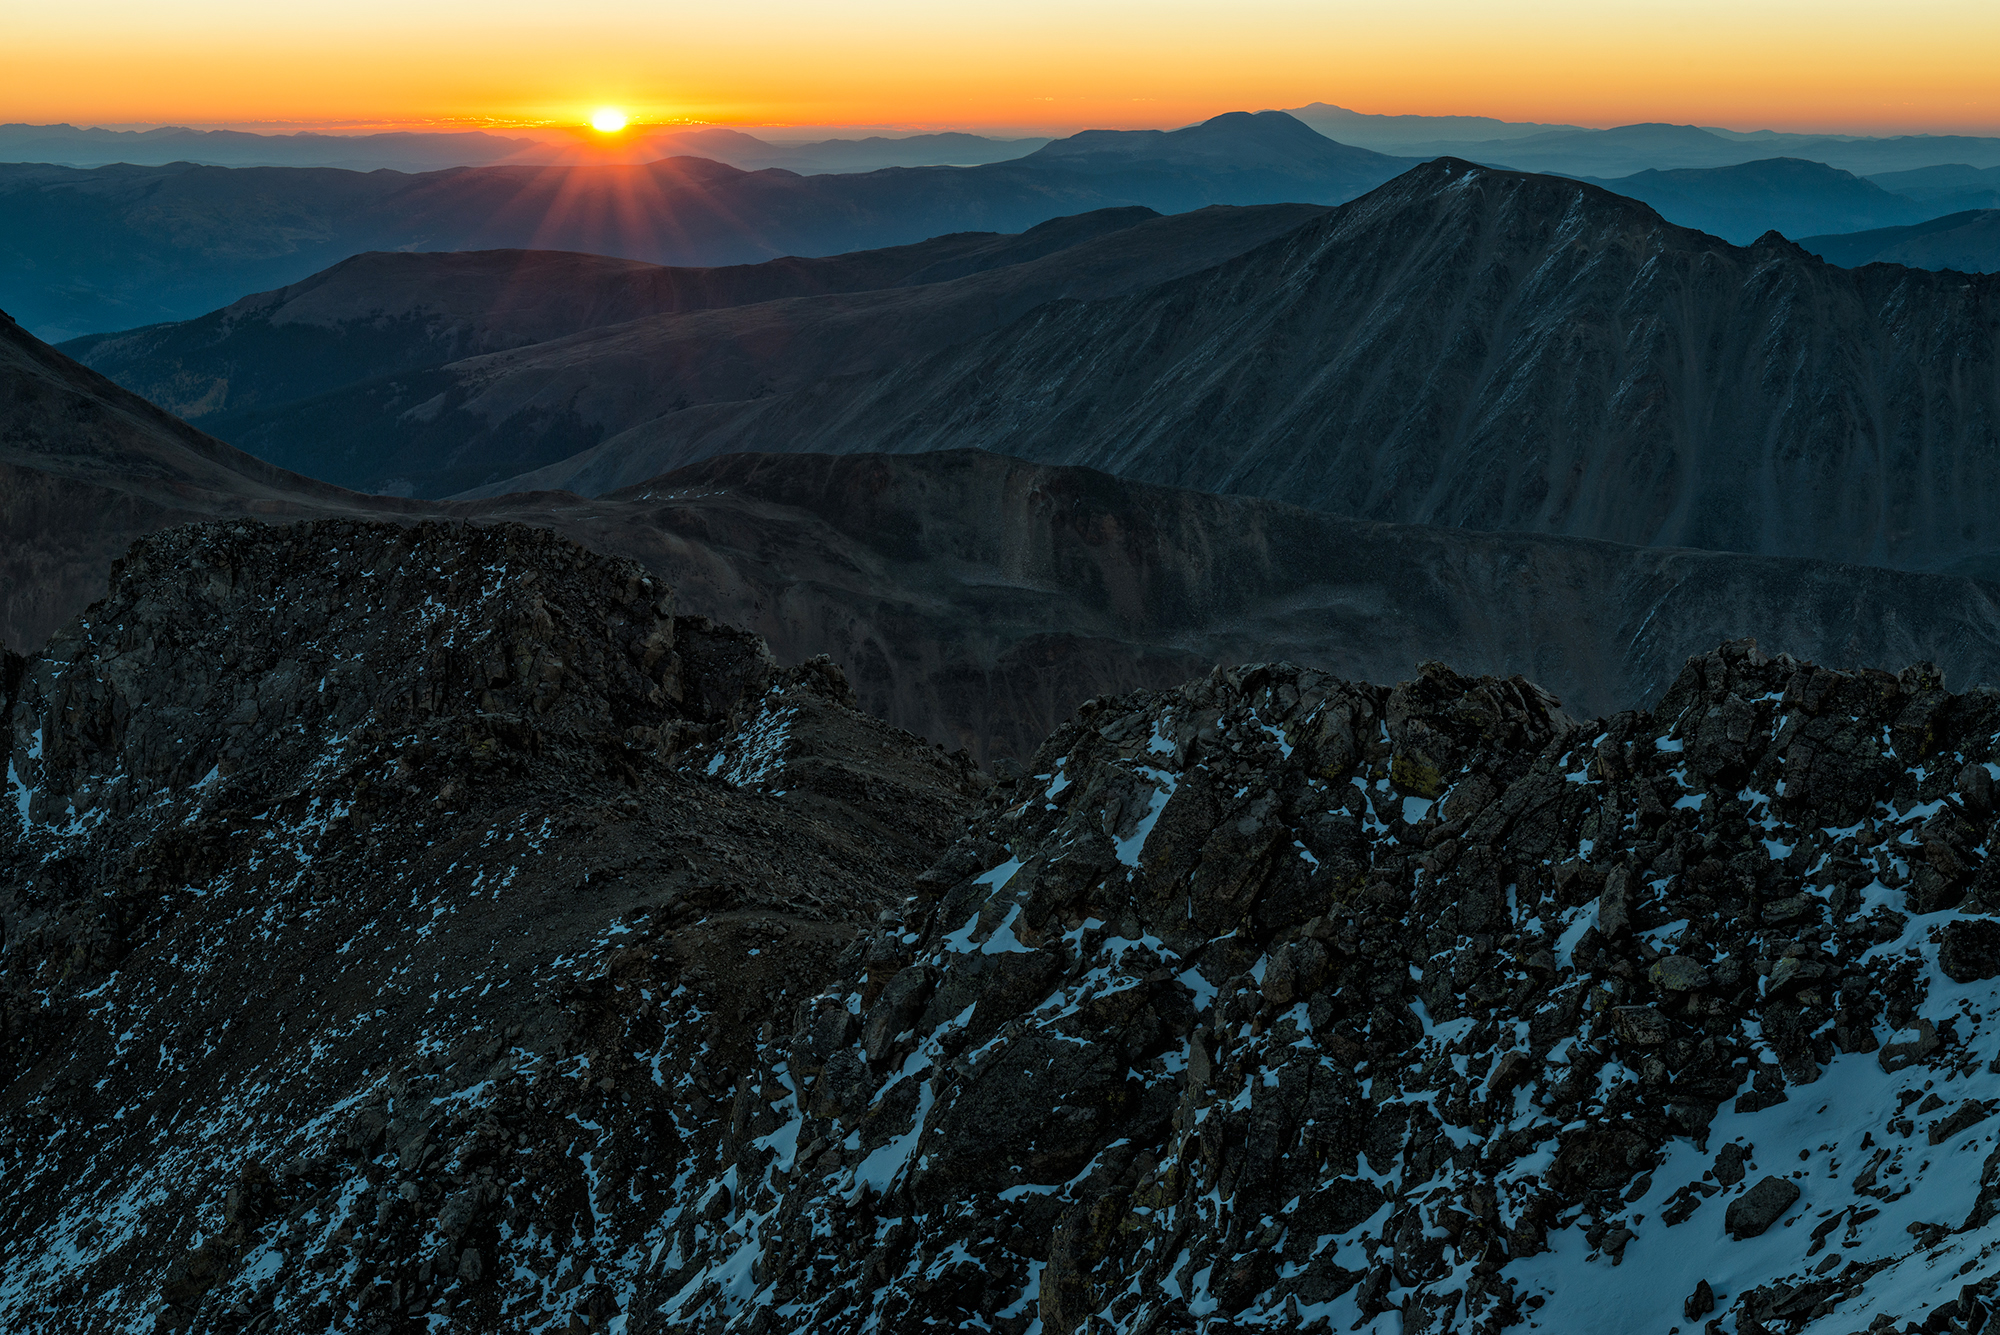 Sunrise. La Plata Peak, Colorado, 2016